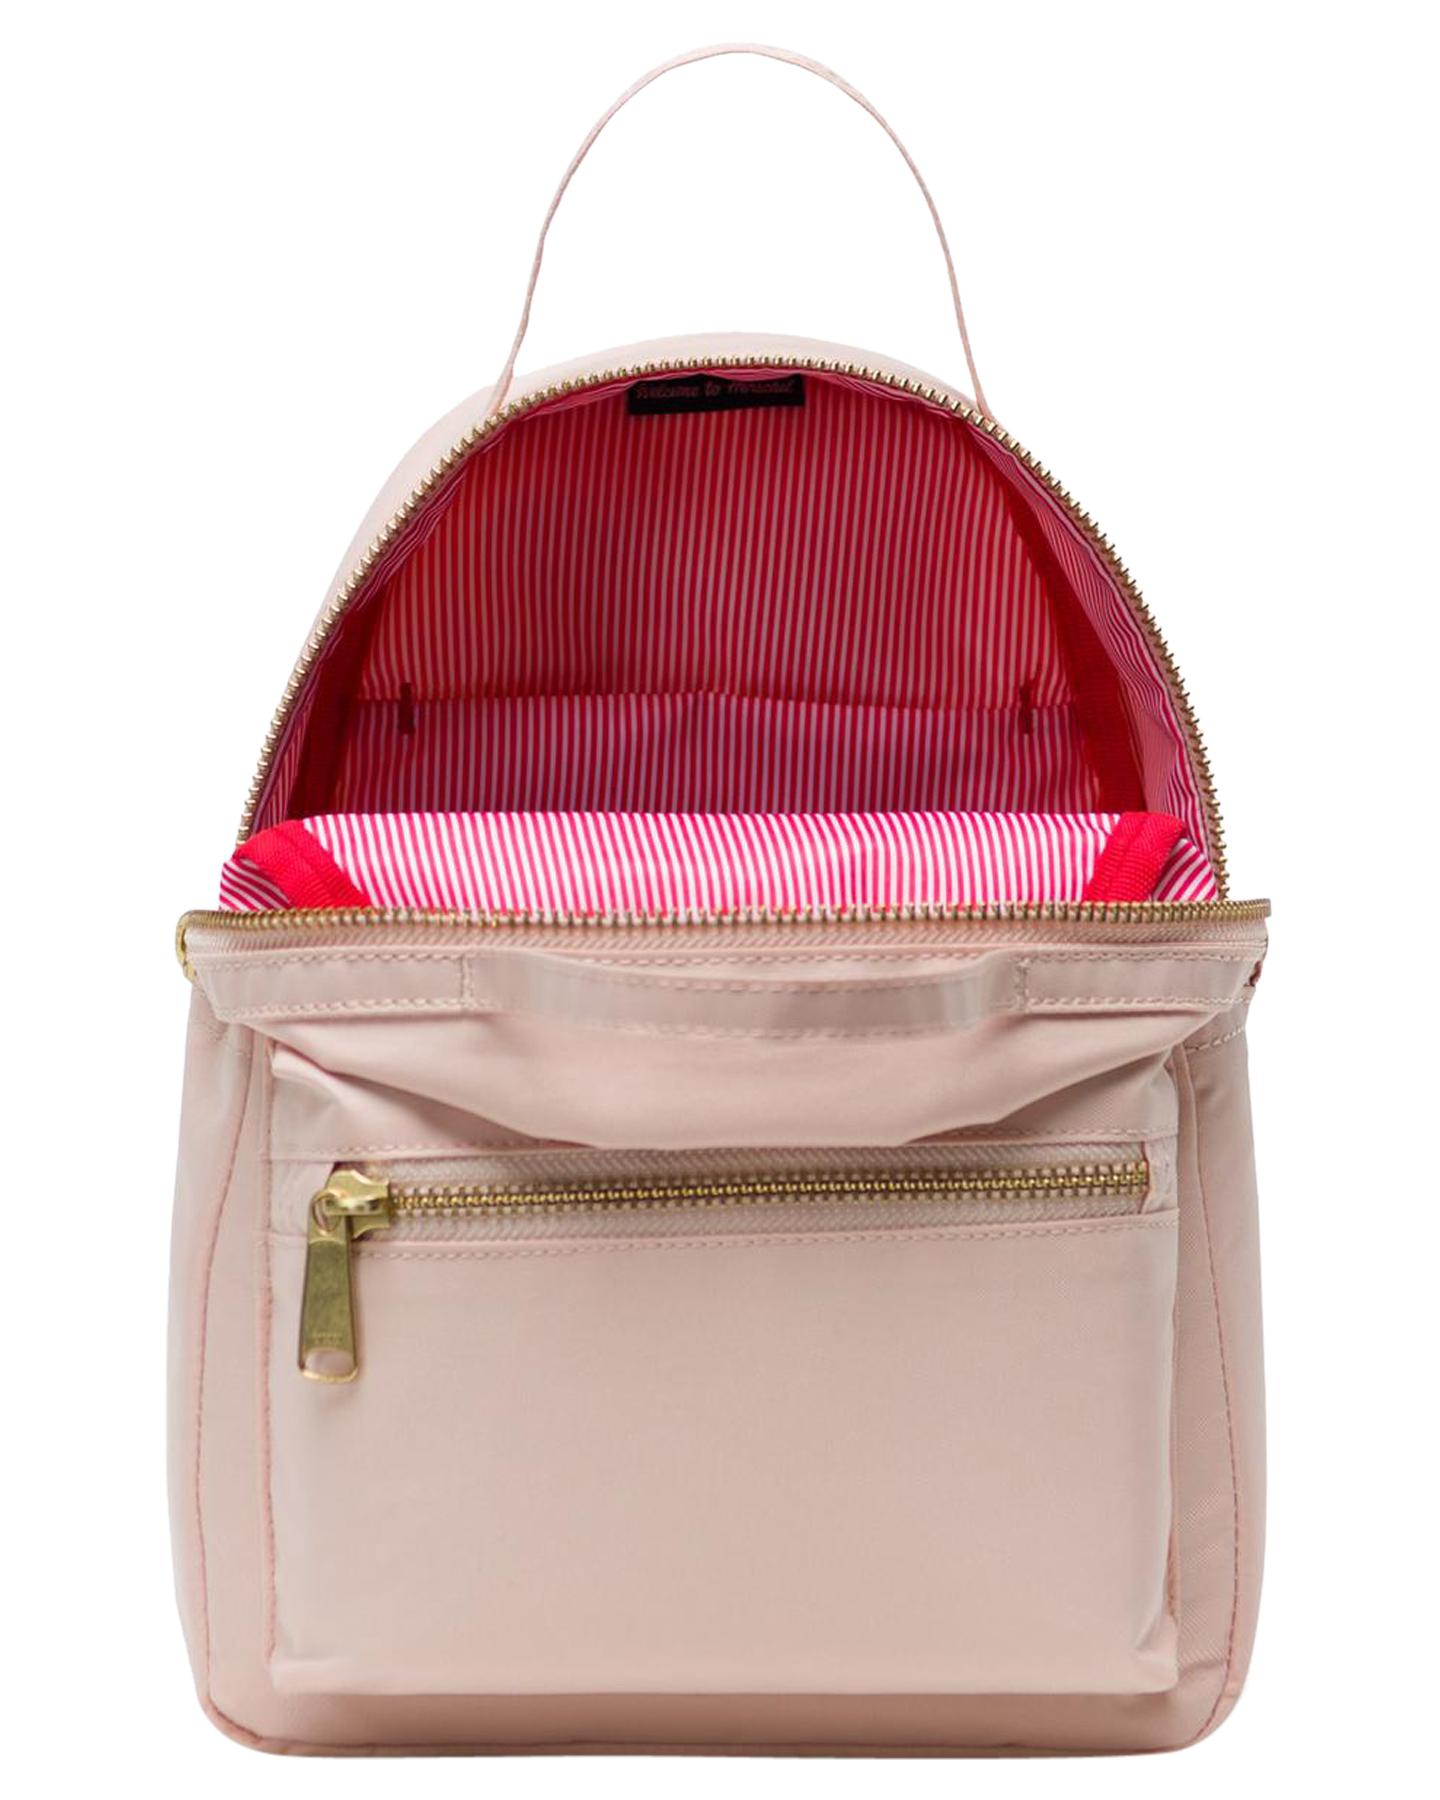 c98359a7cdc ... CAMEO ROSE WOMENS ACCESSORIES HERSCHEL SUPPLY CO BAGS + BACKPACKS -  10639-02465-OSCMRS ...